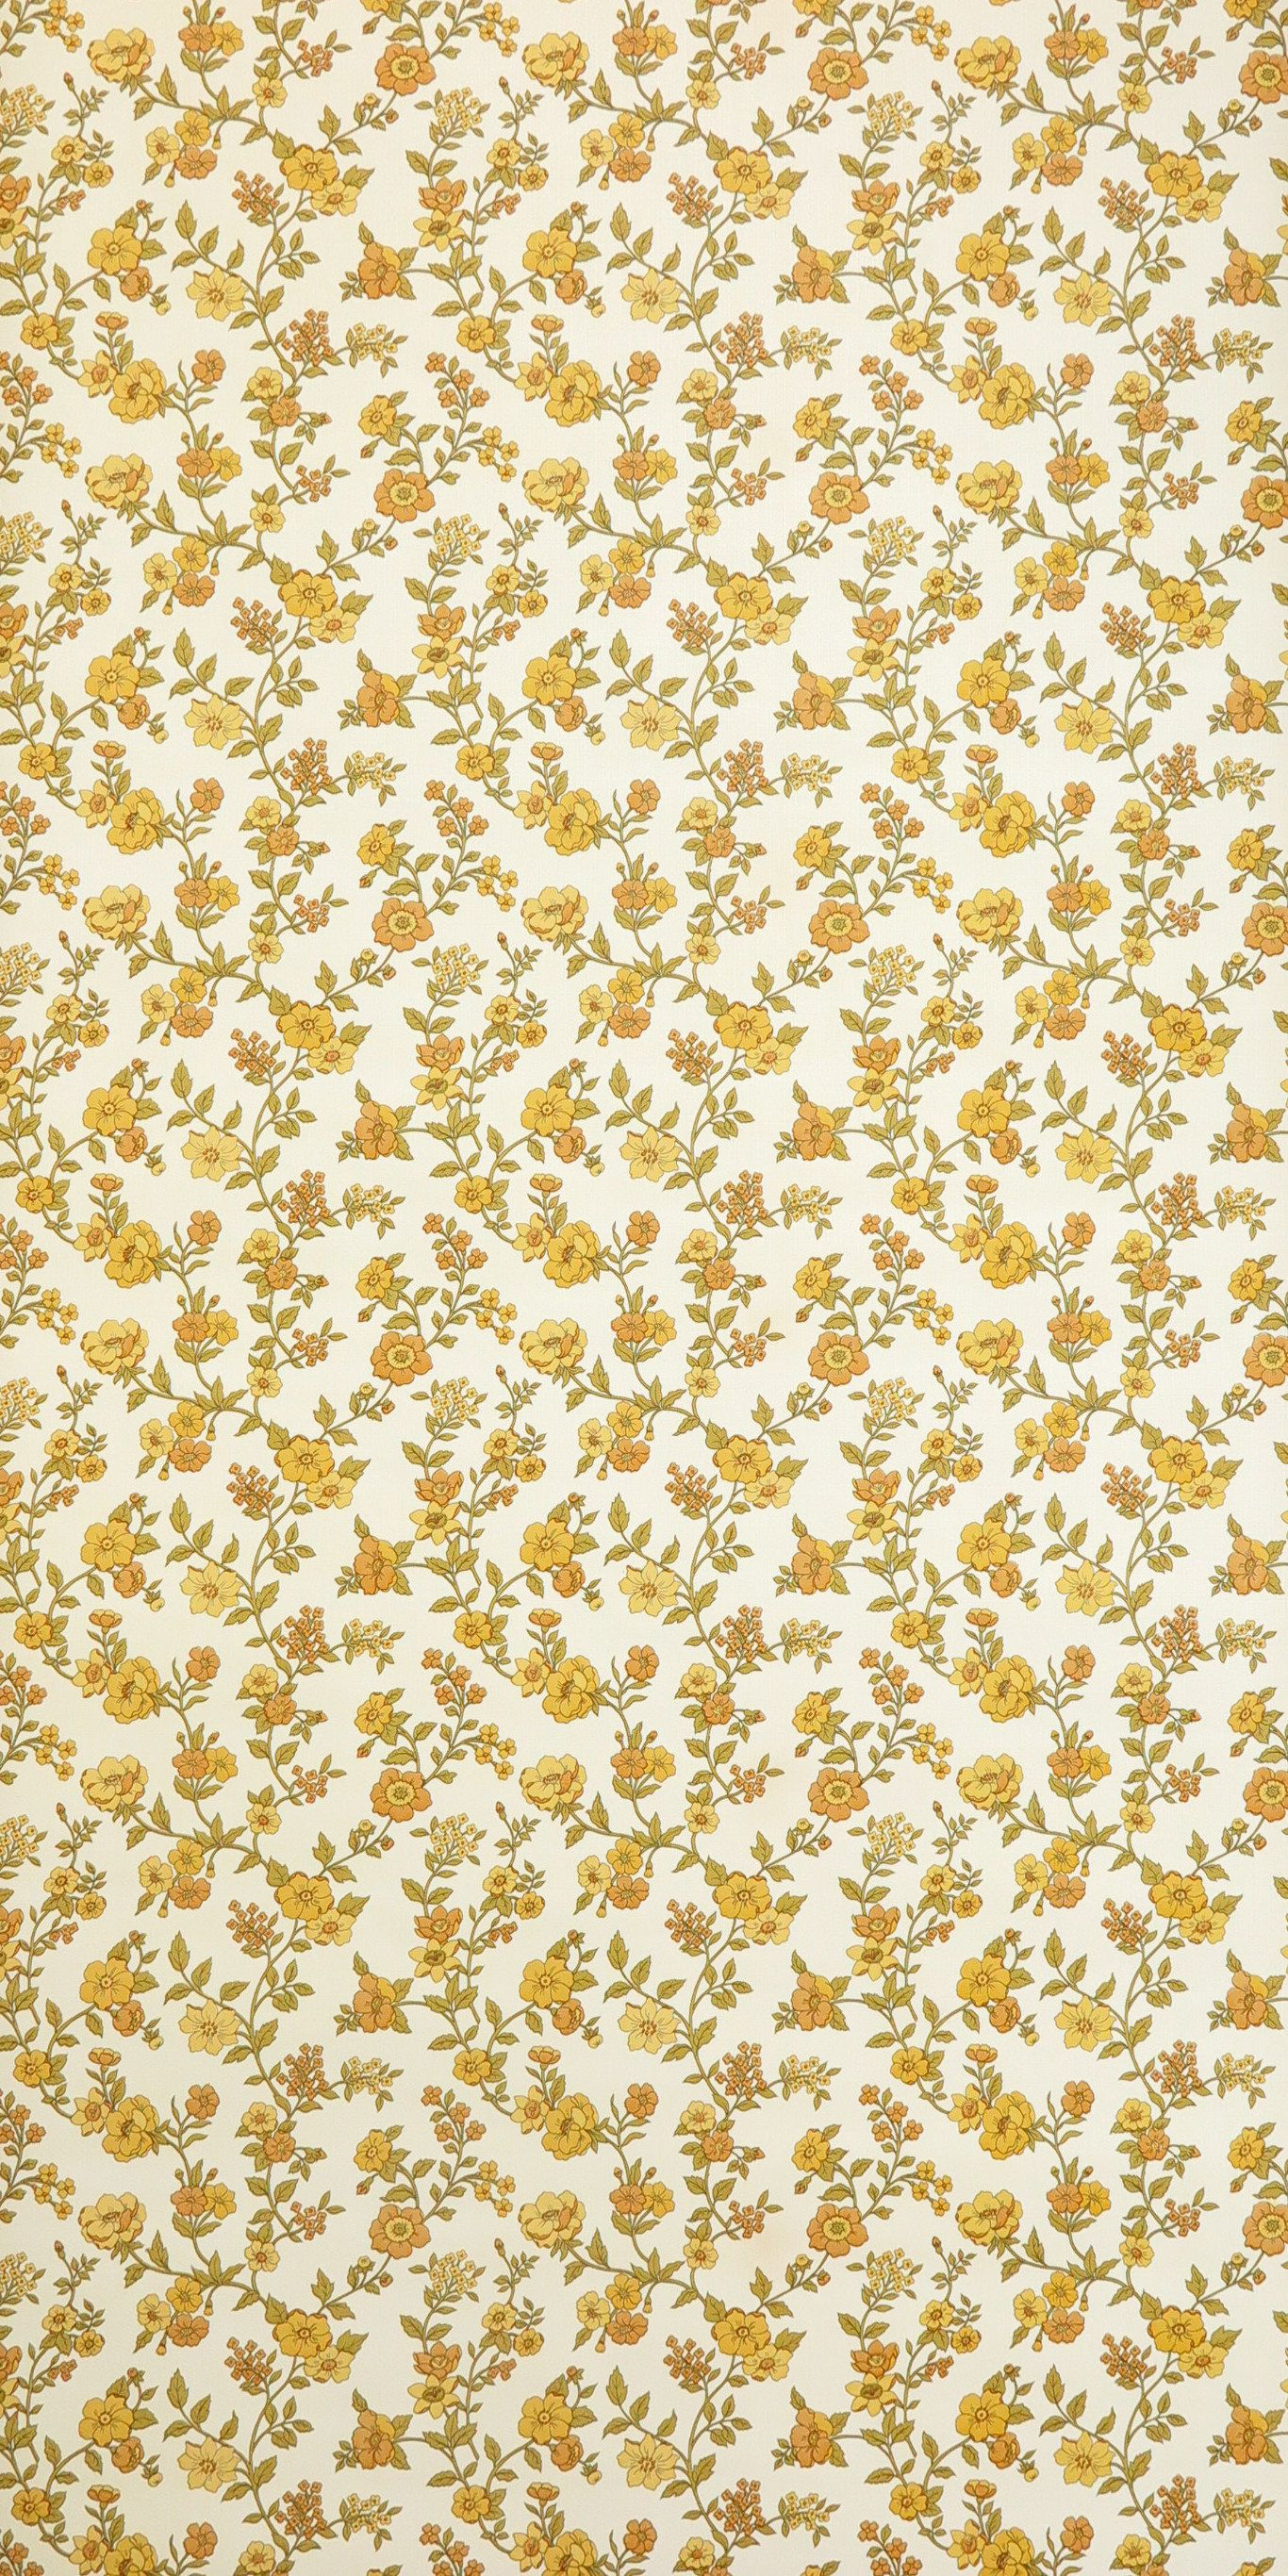 Vintage Wallpaper buttercup per meter